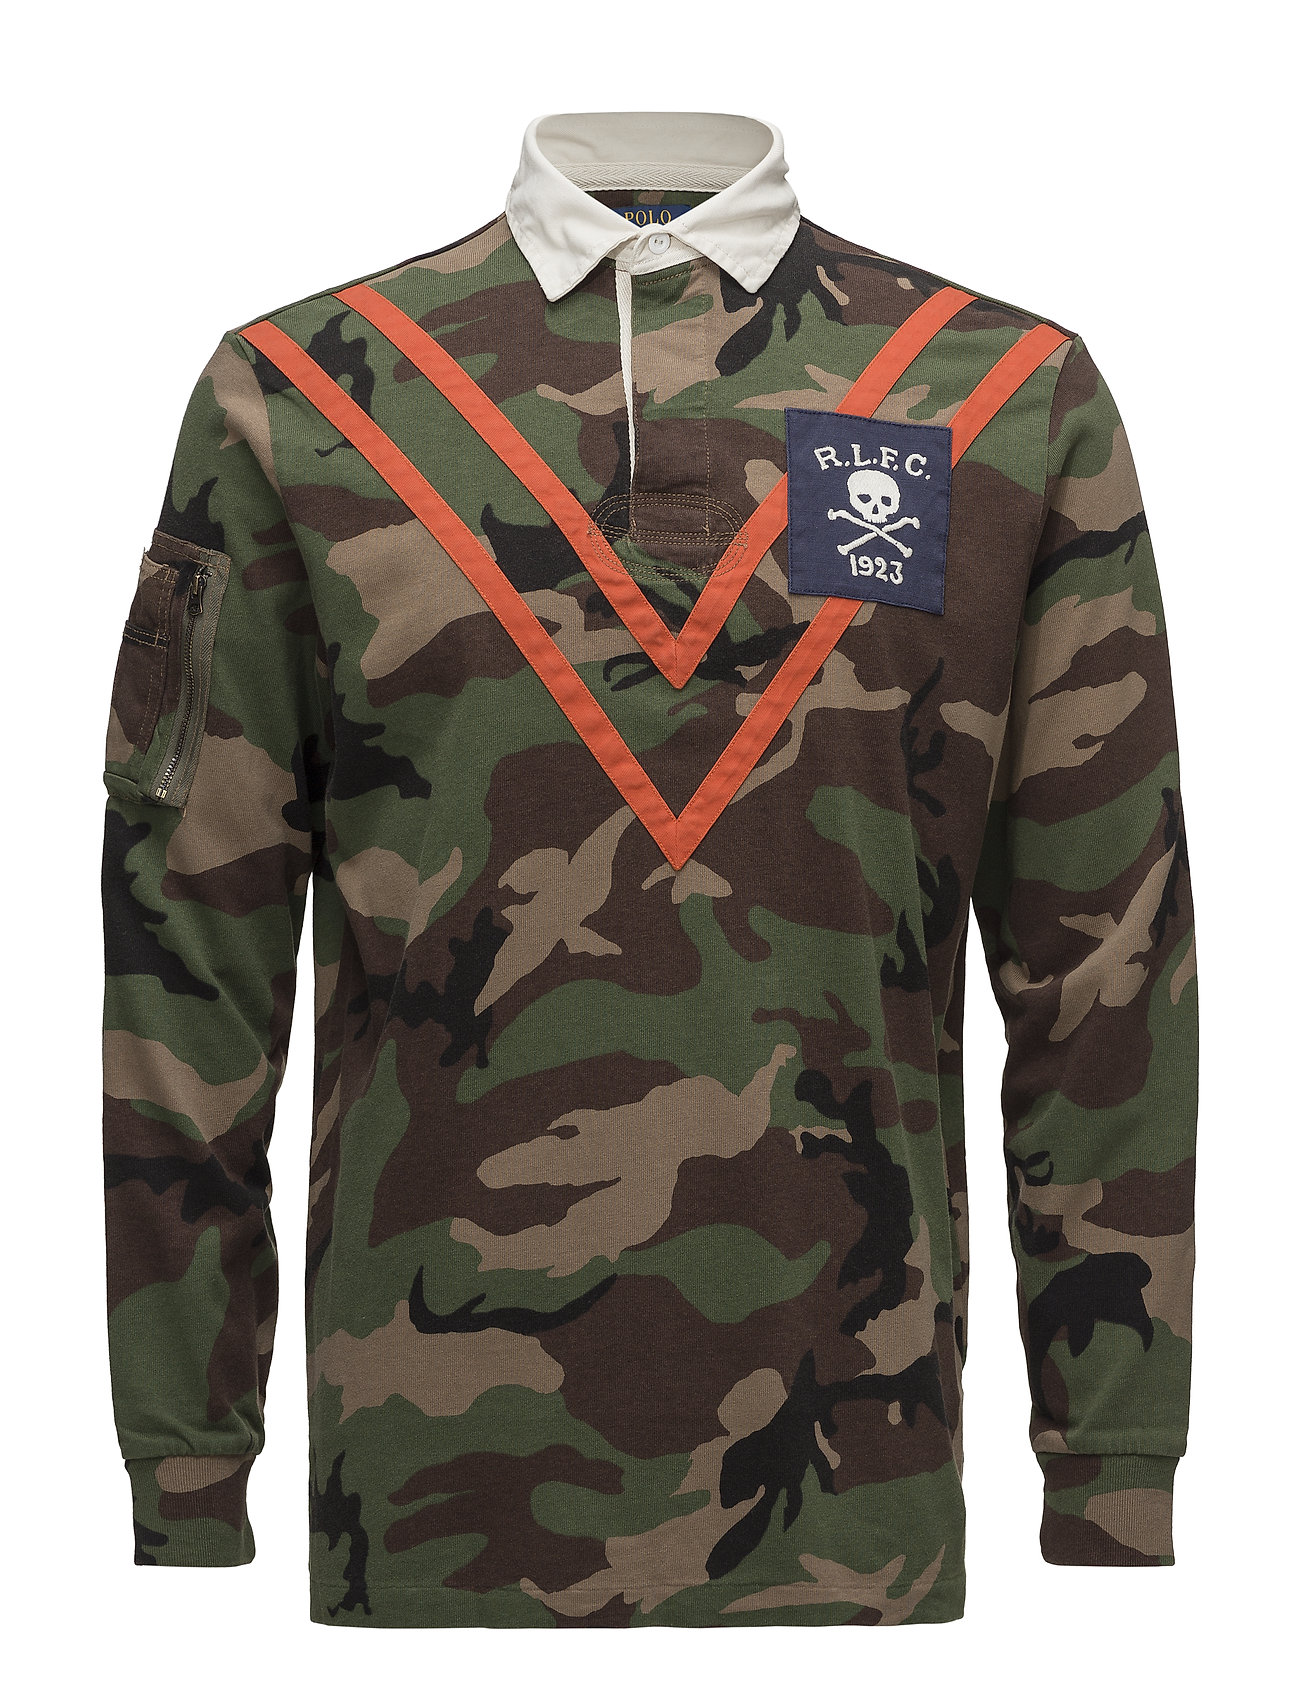 869a79f5 Classic Fit Camo Jersey Rugby (Surplus Camo) (£129.35) - Polo Ralph ...